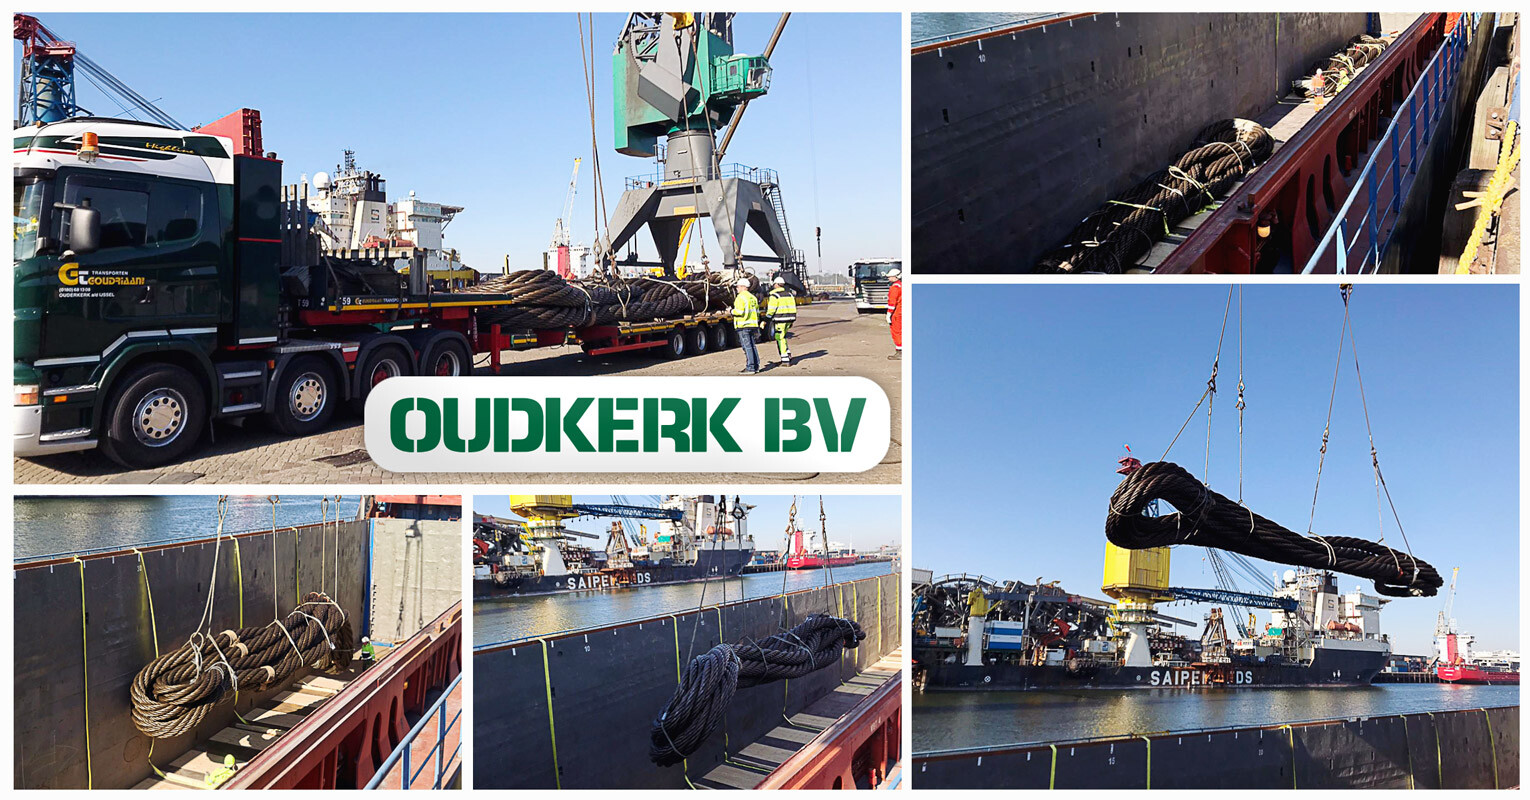 Oudkerk Transported 4 × 50 tons Grommets from Rotterdam to Norway by Chartered Coaster Vessel